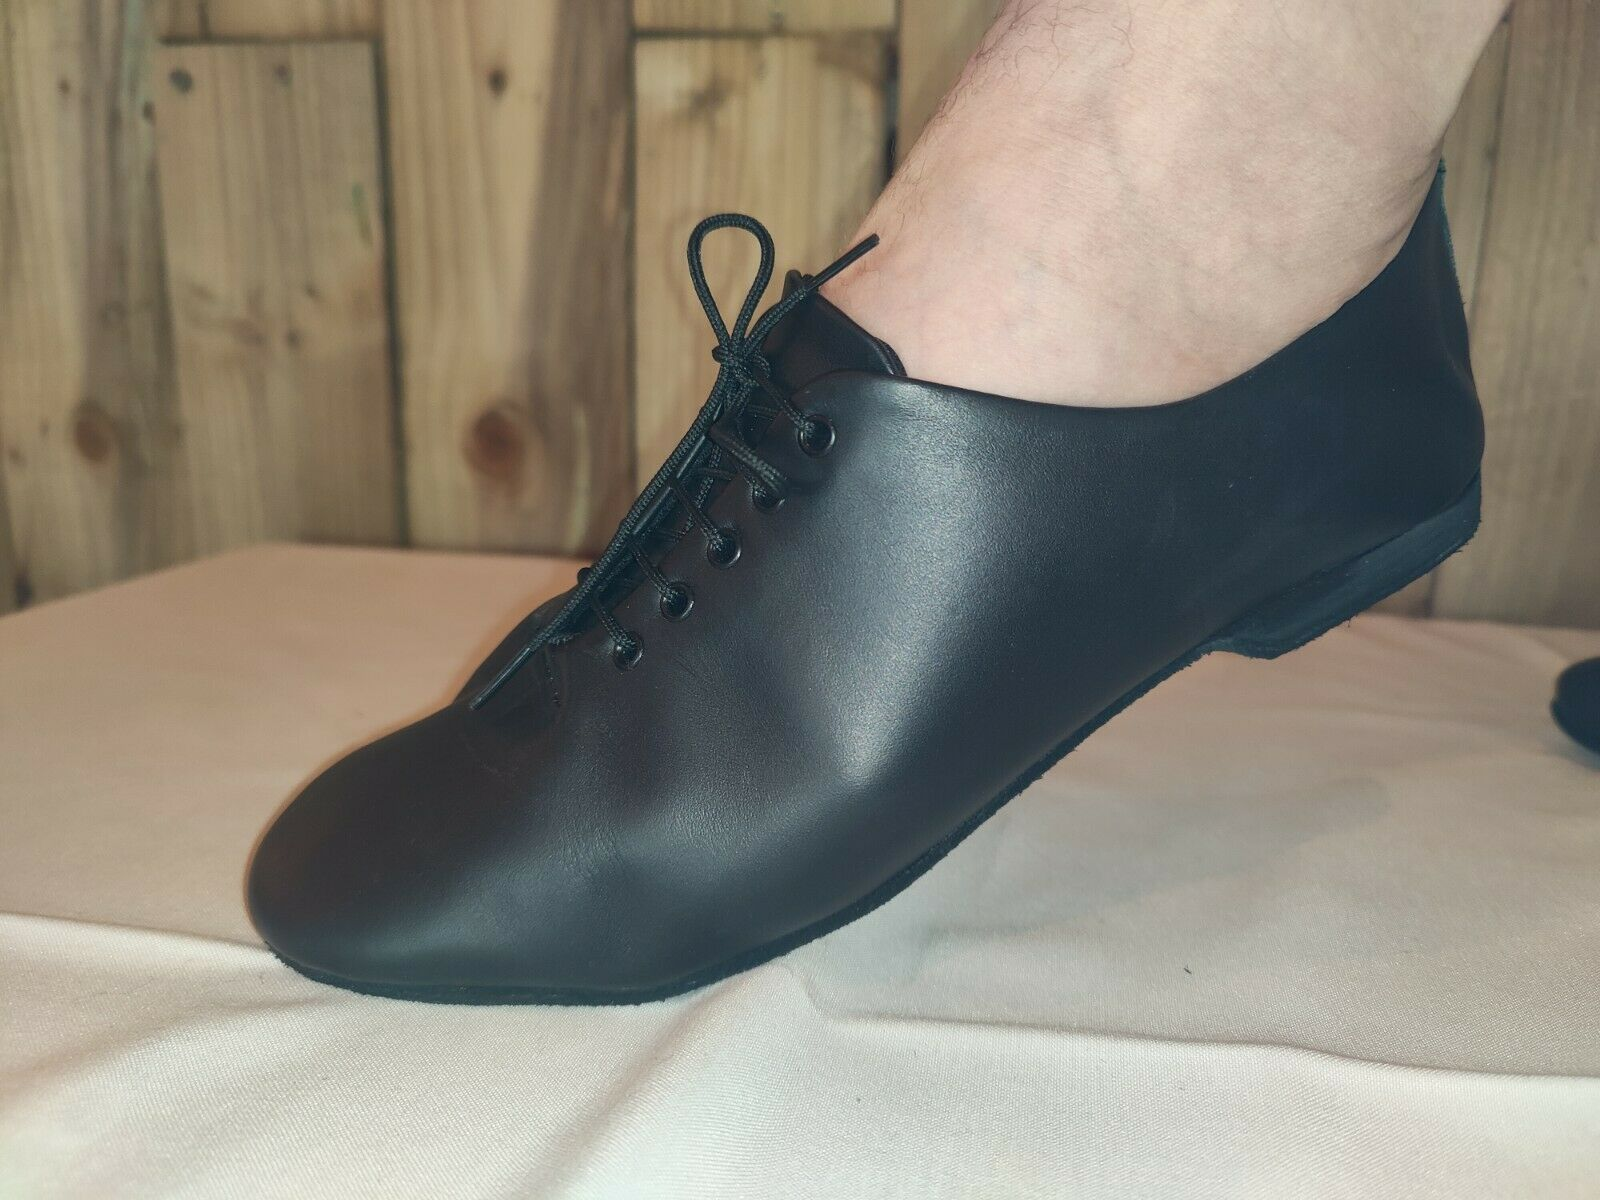 Jazz shoe, Suede sole, freestyle, rock n roll, contemporary